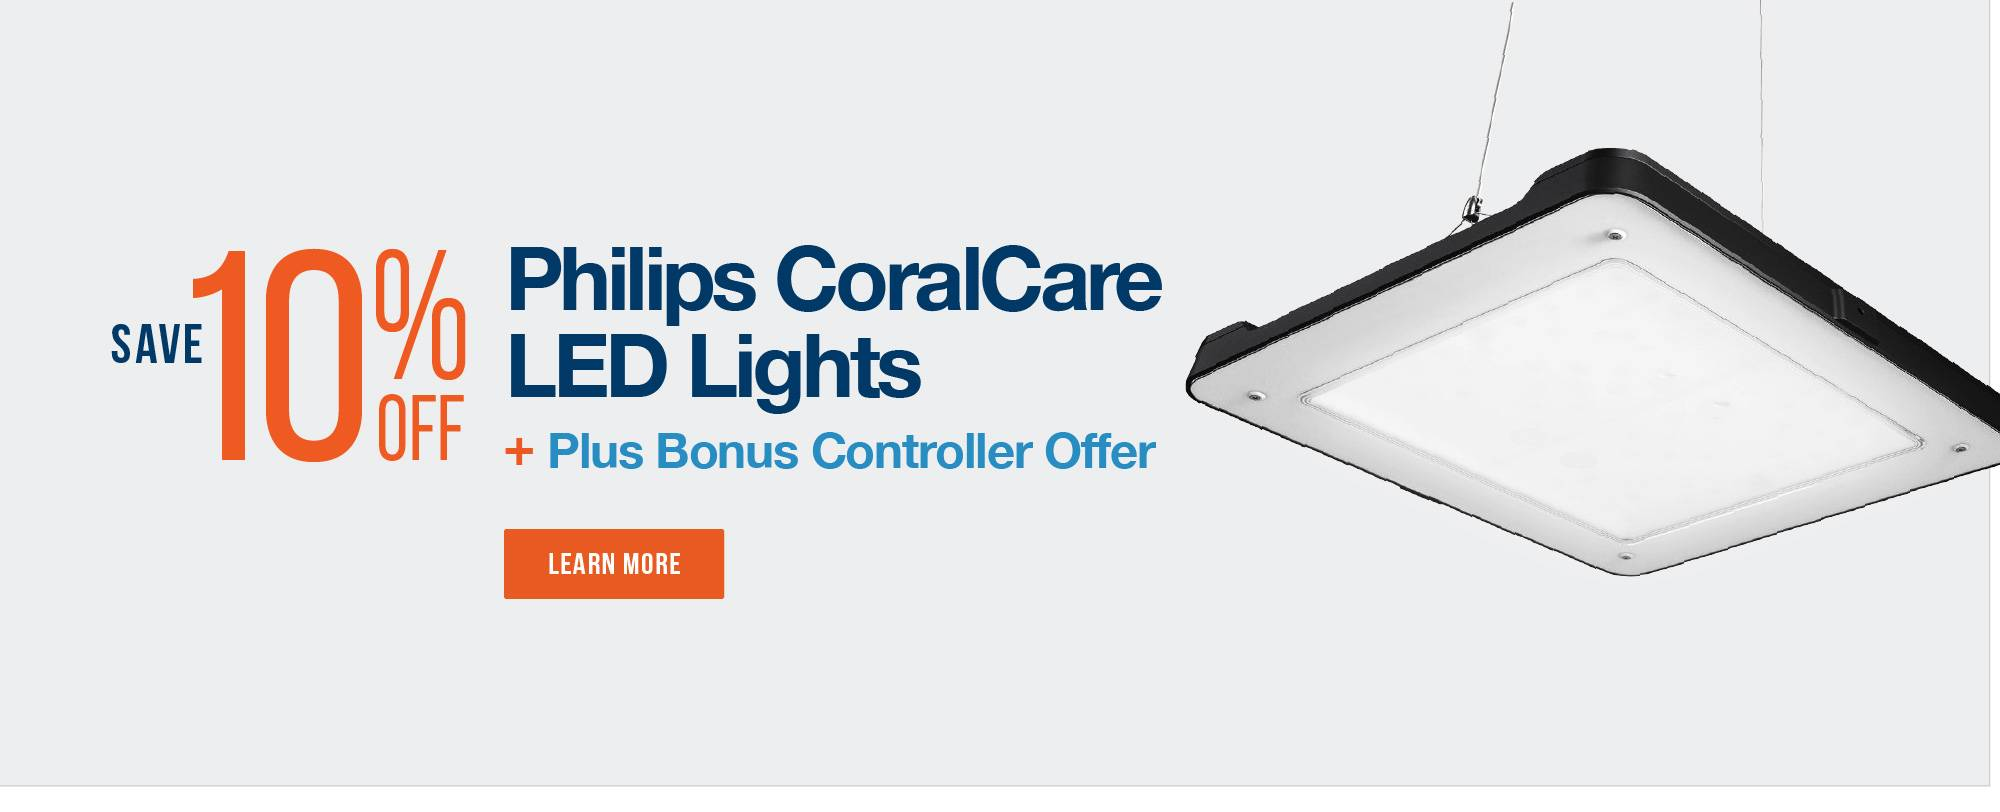 Philips CoralCare Lights On sale